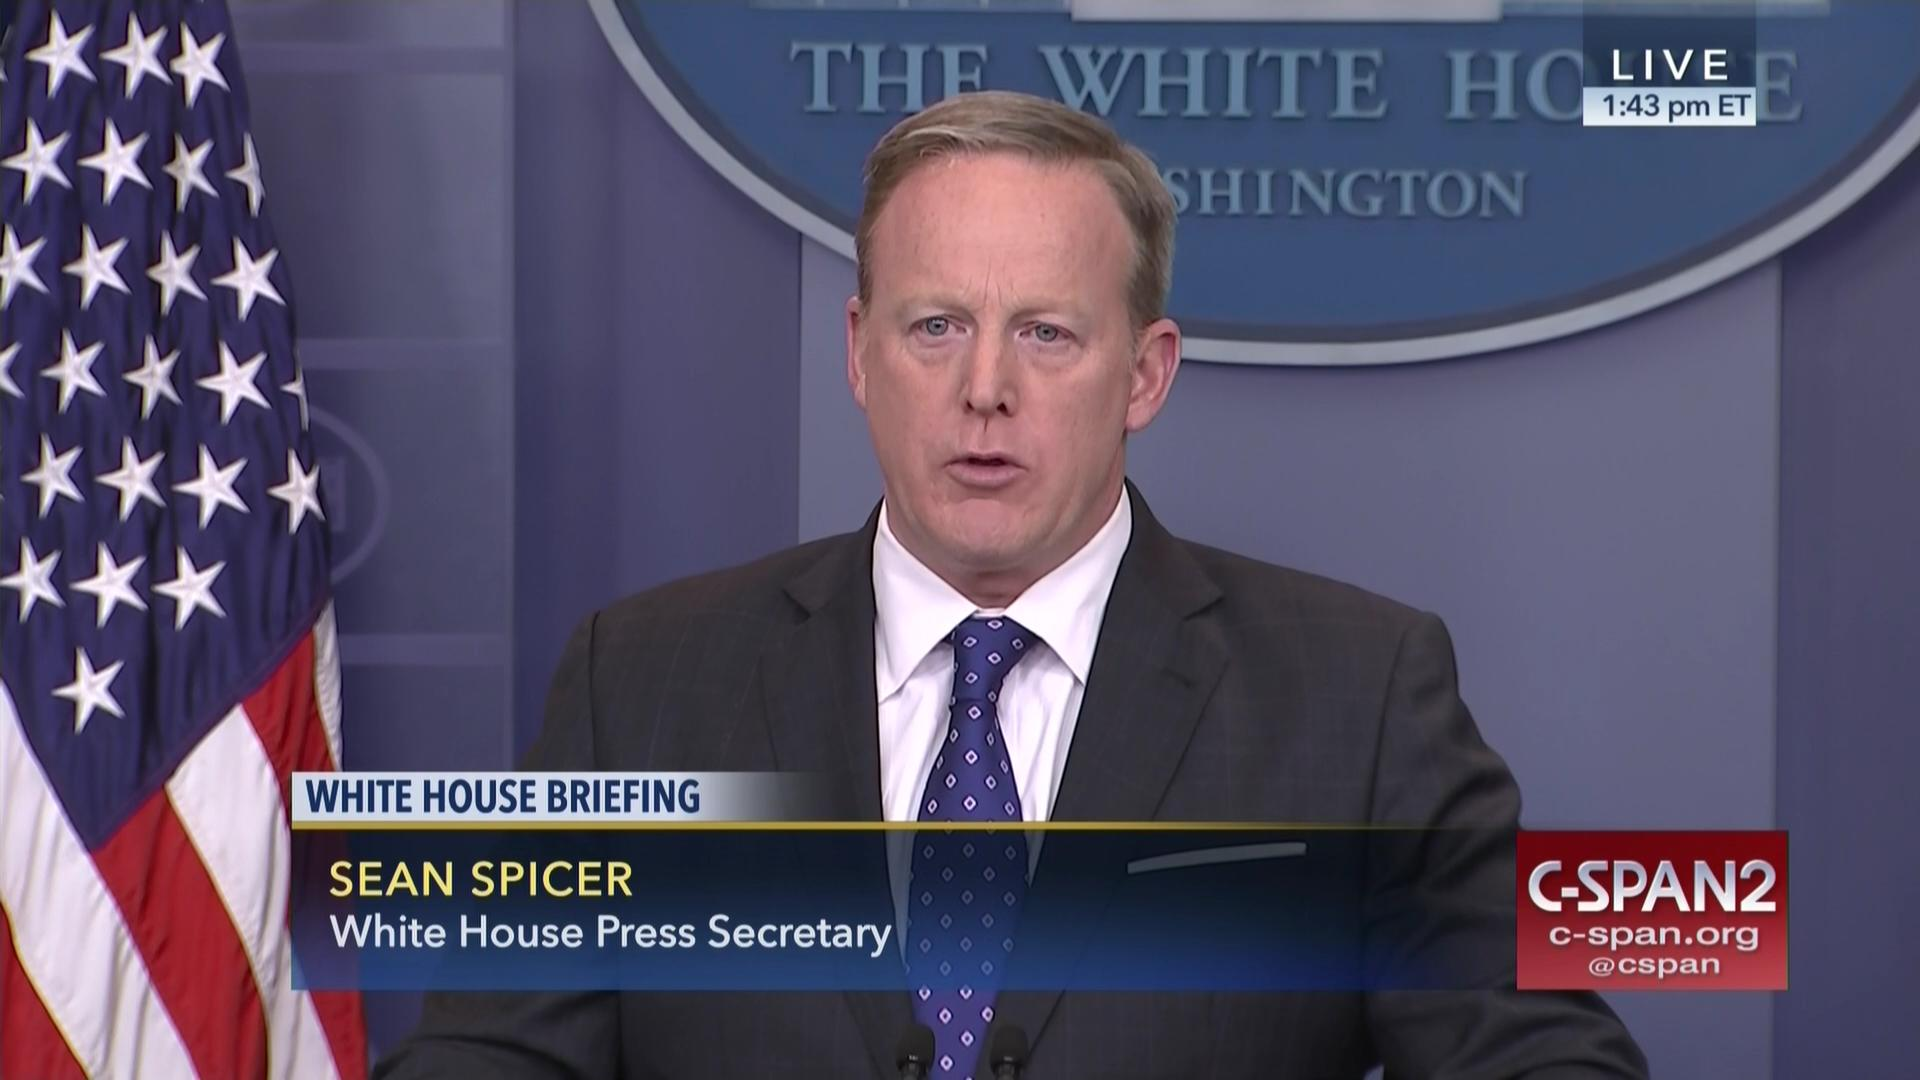 sean spicer briefs reporters white house, feb 21 2017 | c-span